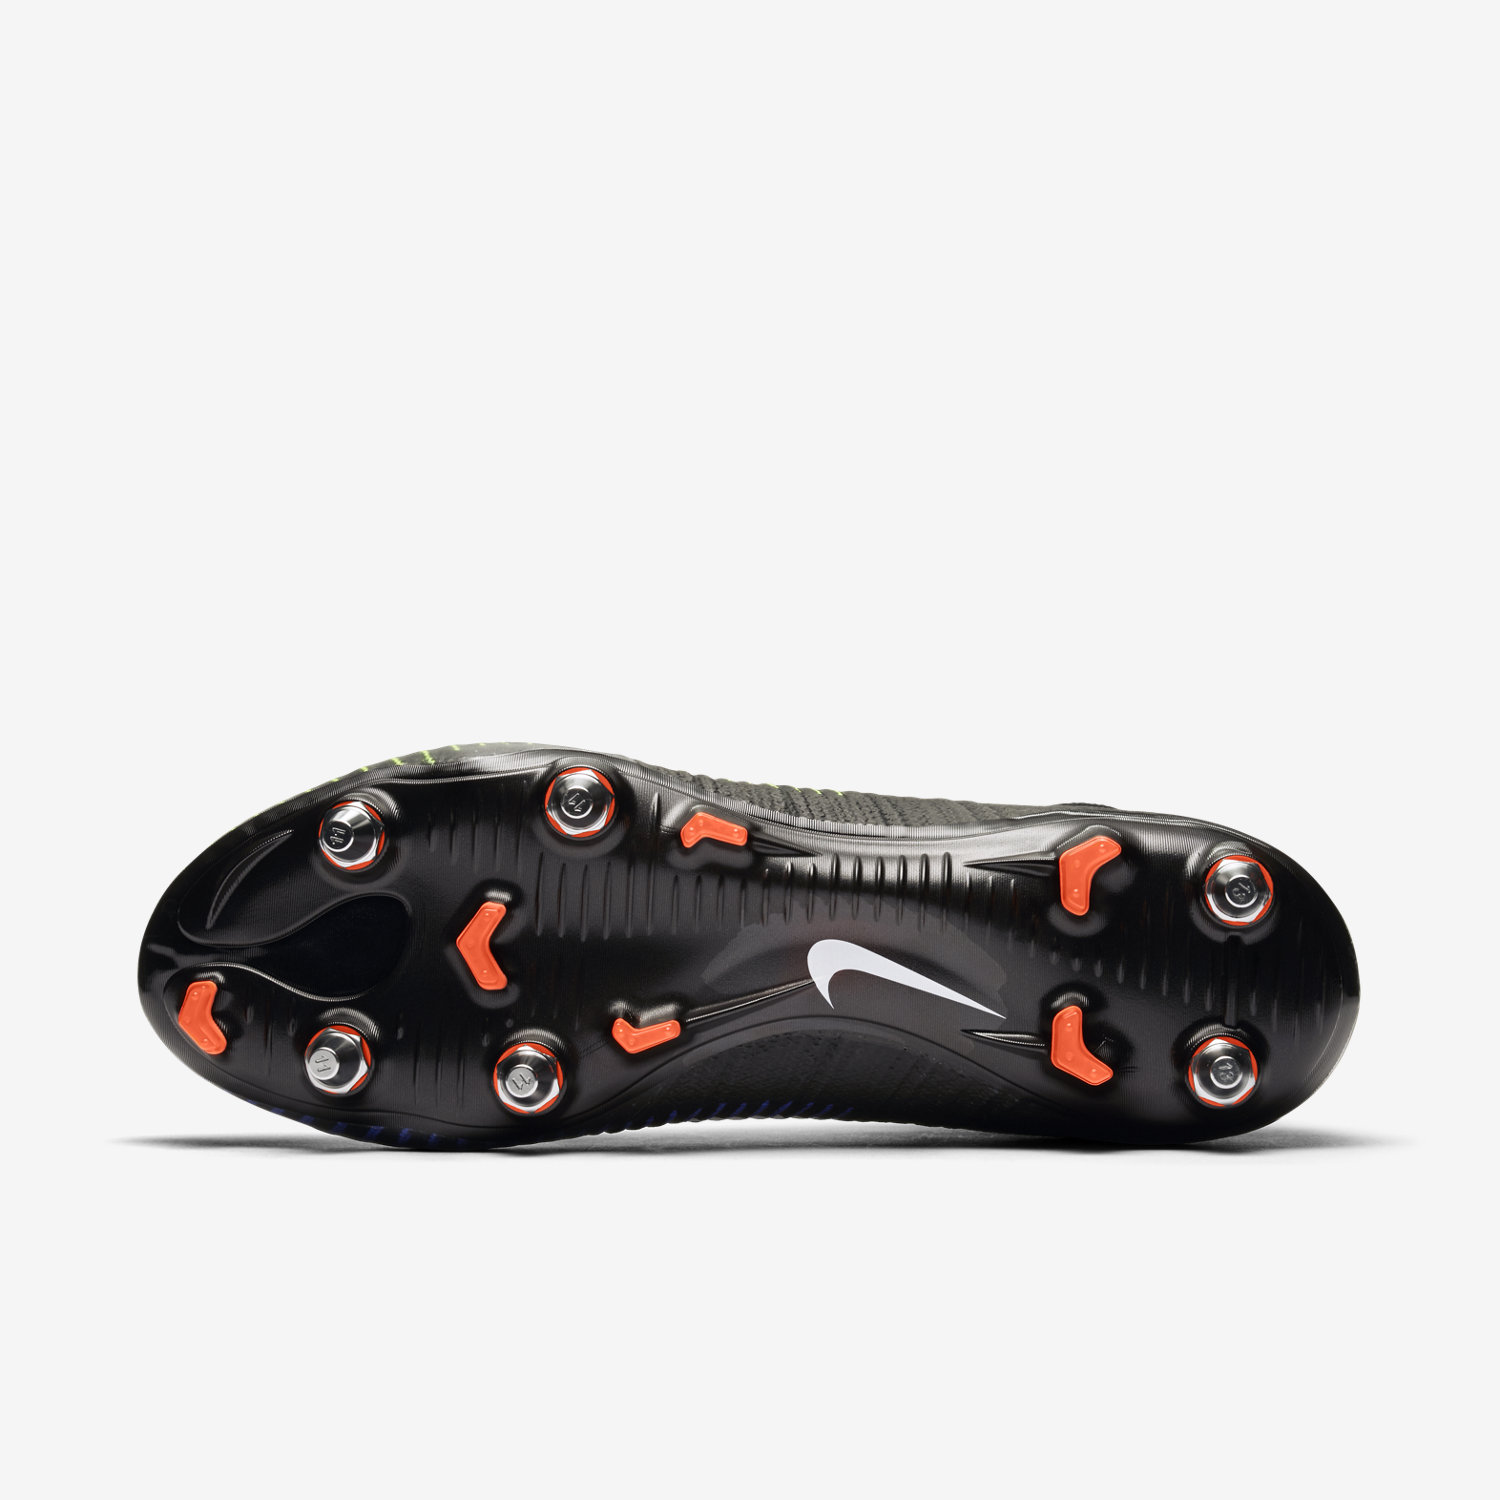 Nike Mercurial Superfly V Dynamic Fit Sg Pro Soft Ground Football Boot Uk